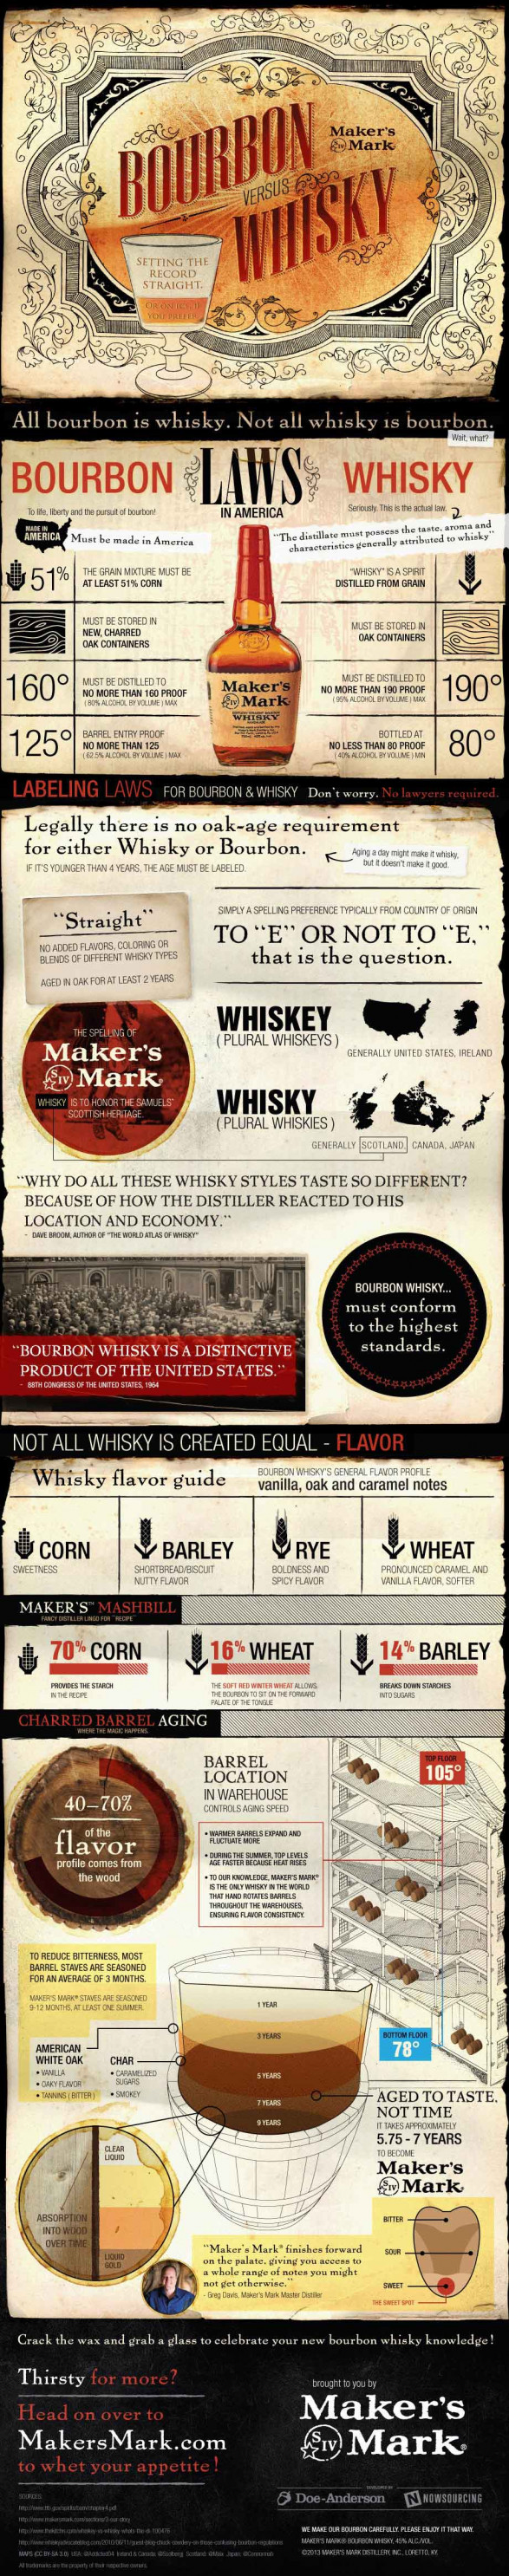 Bourbon Vs. Whisky [Infographic] - An Infographic from BestInfographics.co